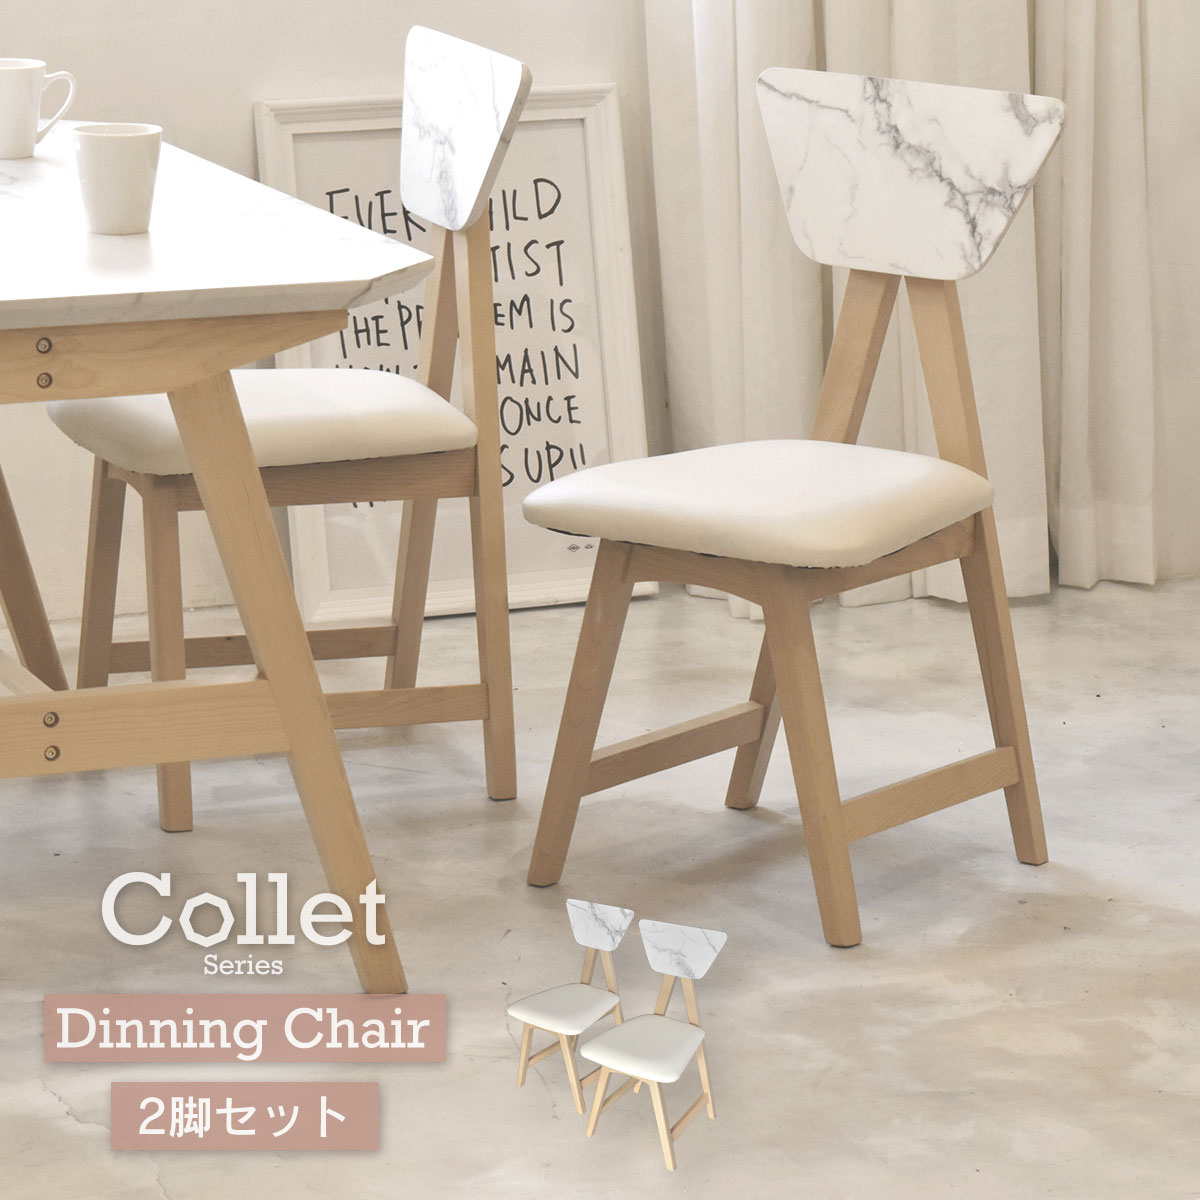 Collet コレクト ダイニングチェア 2脚セット